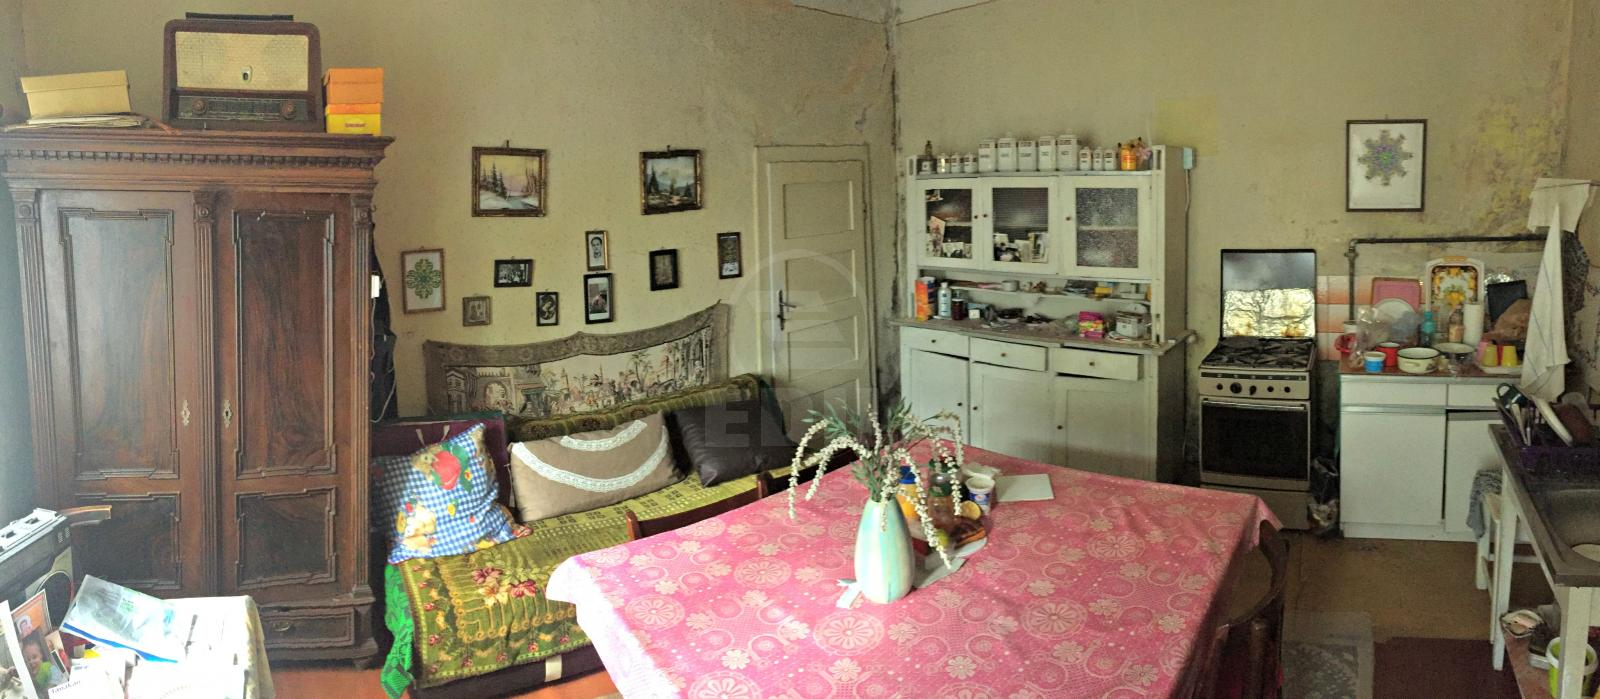 House for sale 2 rooms, CACJ273161-1